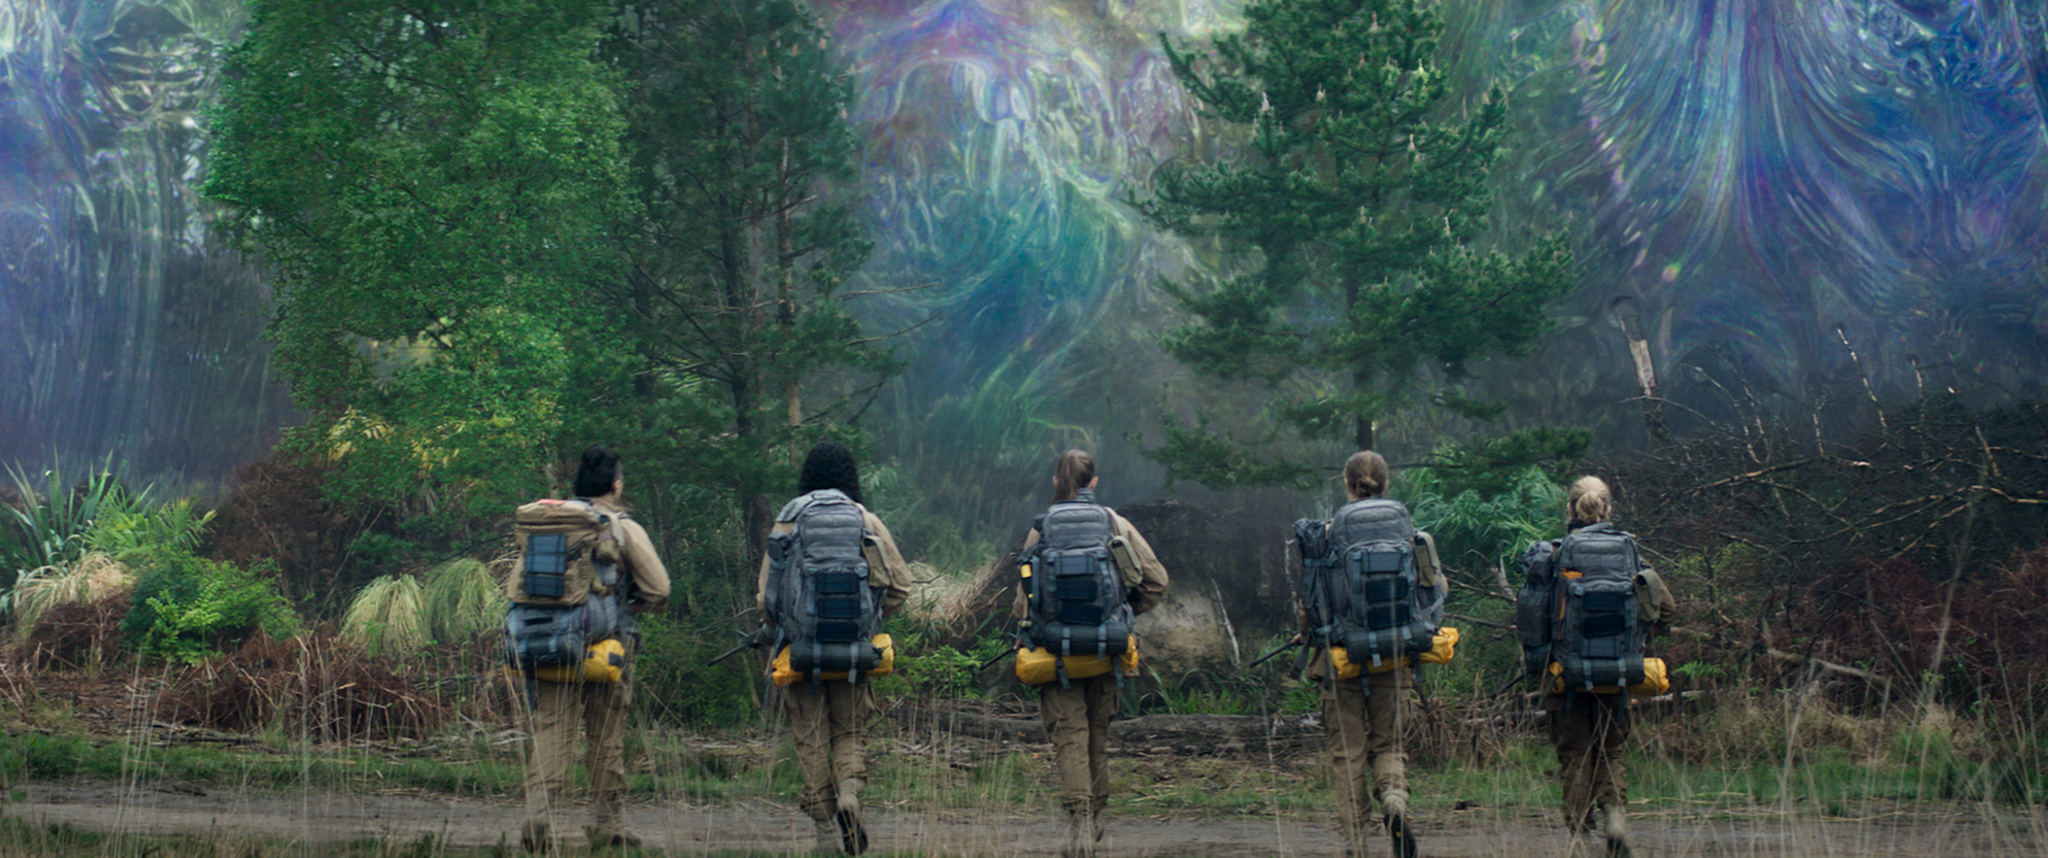 Image result for ANNIHILATION stills